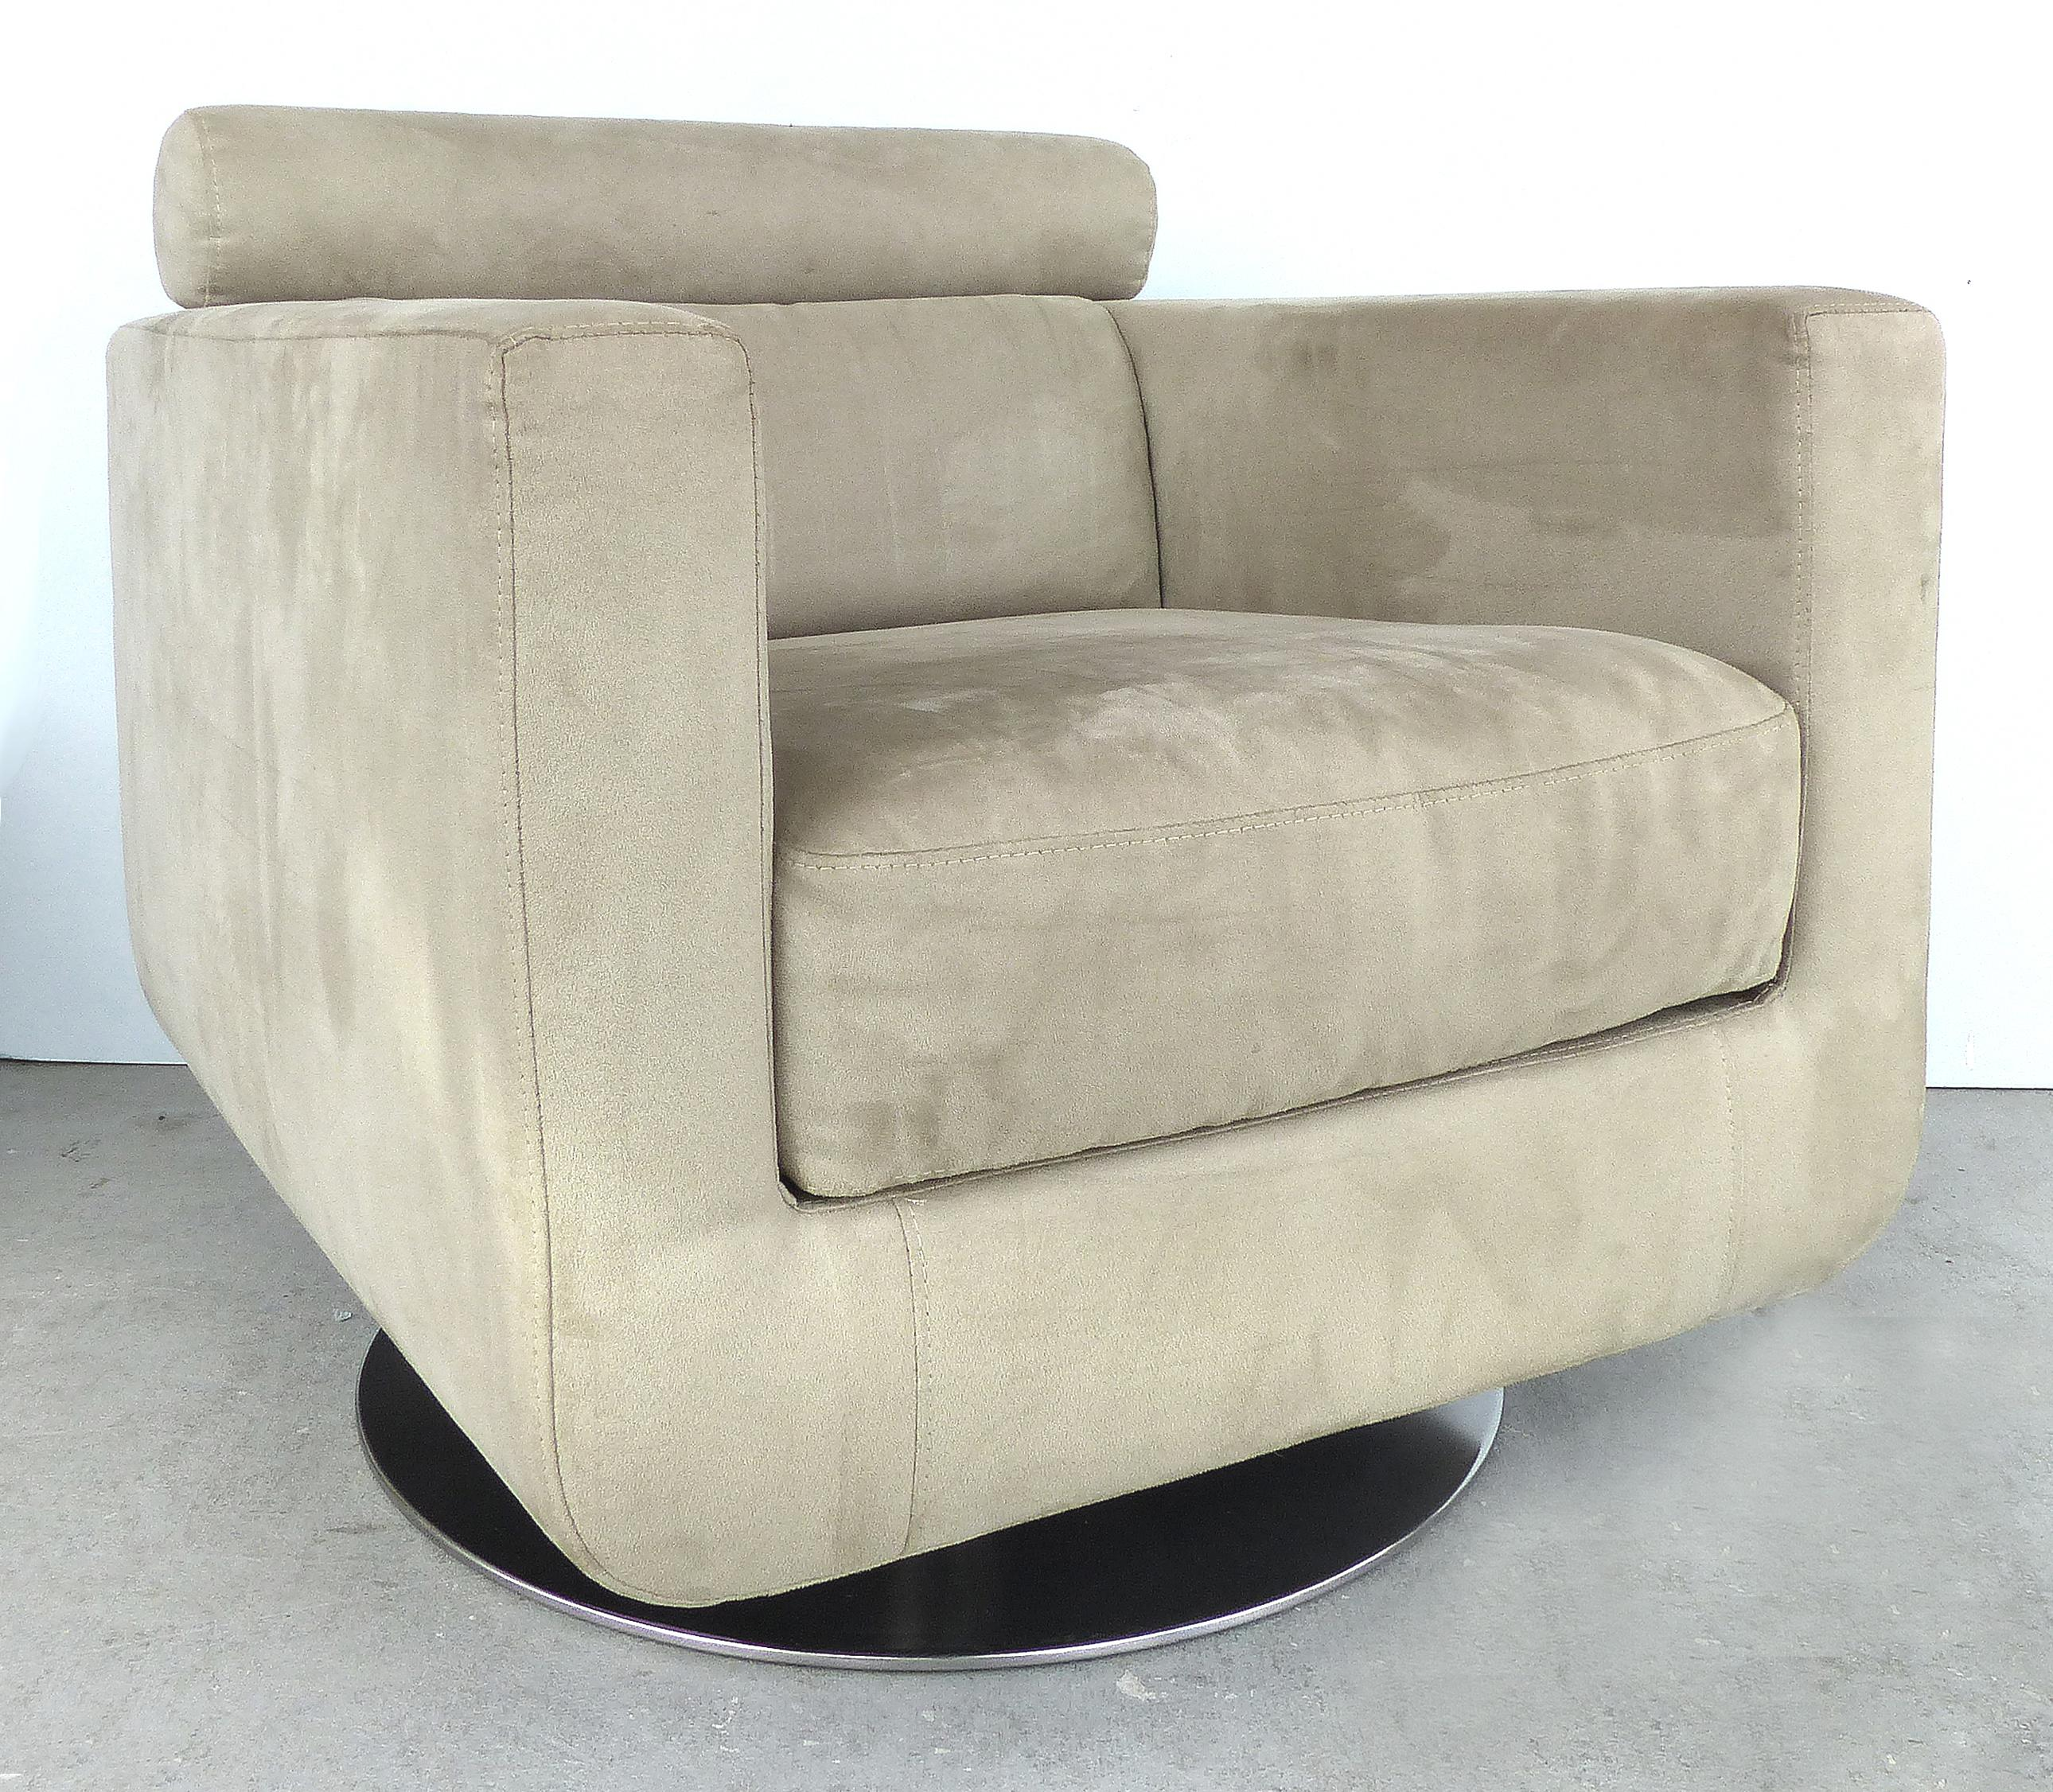 Italian Ultra Suede Swivel Club Chairs By Natuzzi Salotti   A Pair   Image 3